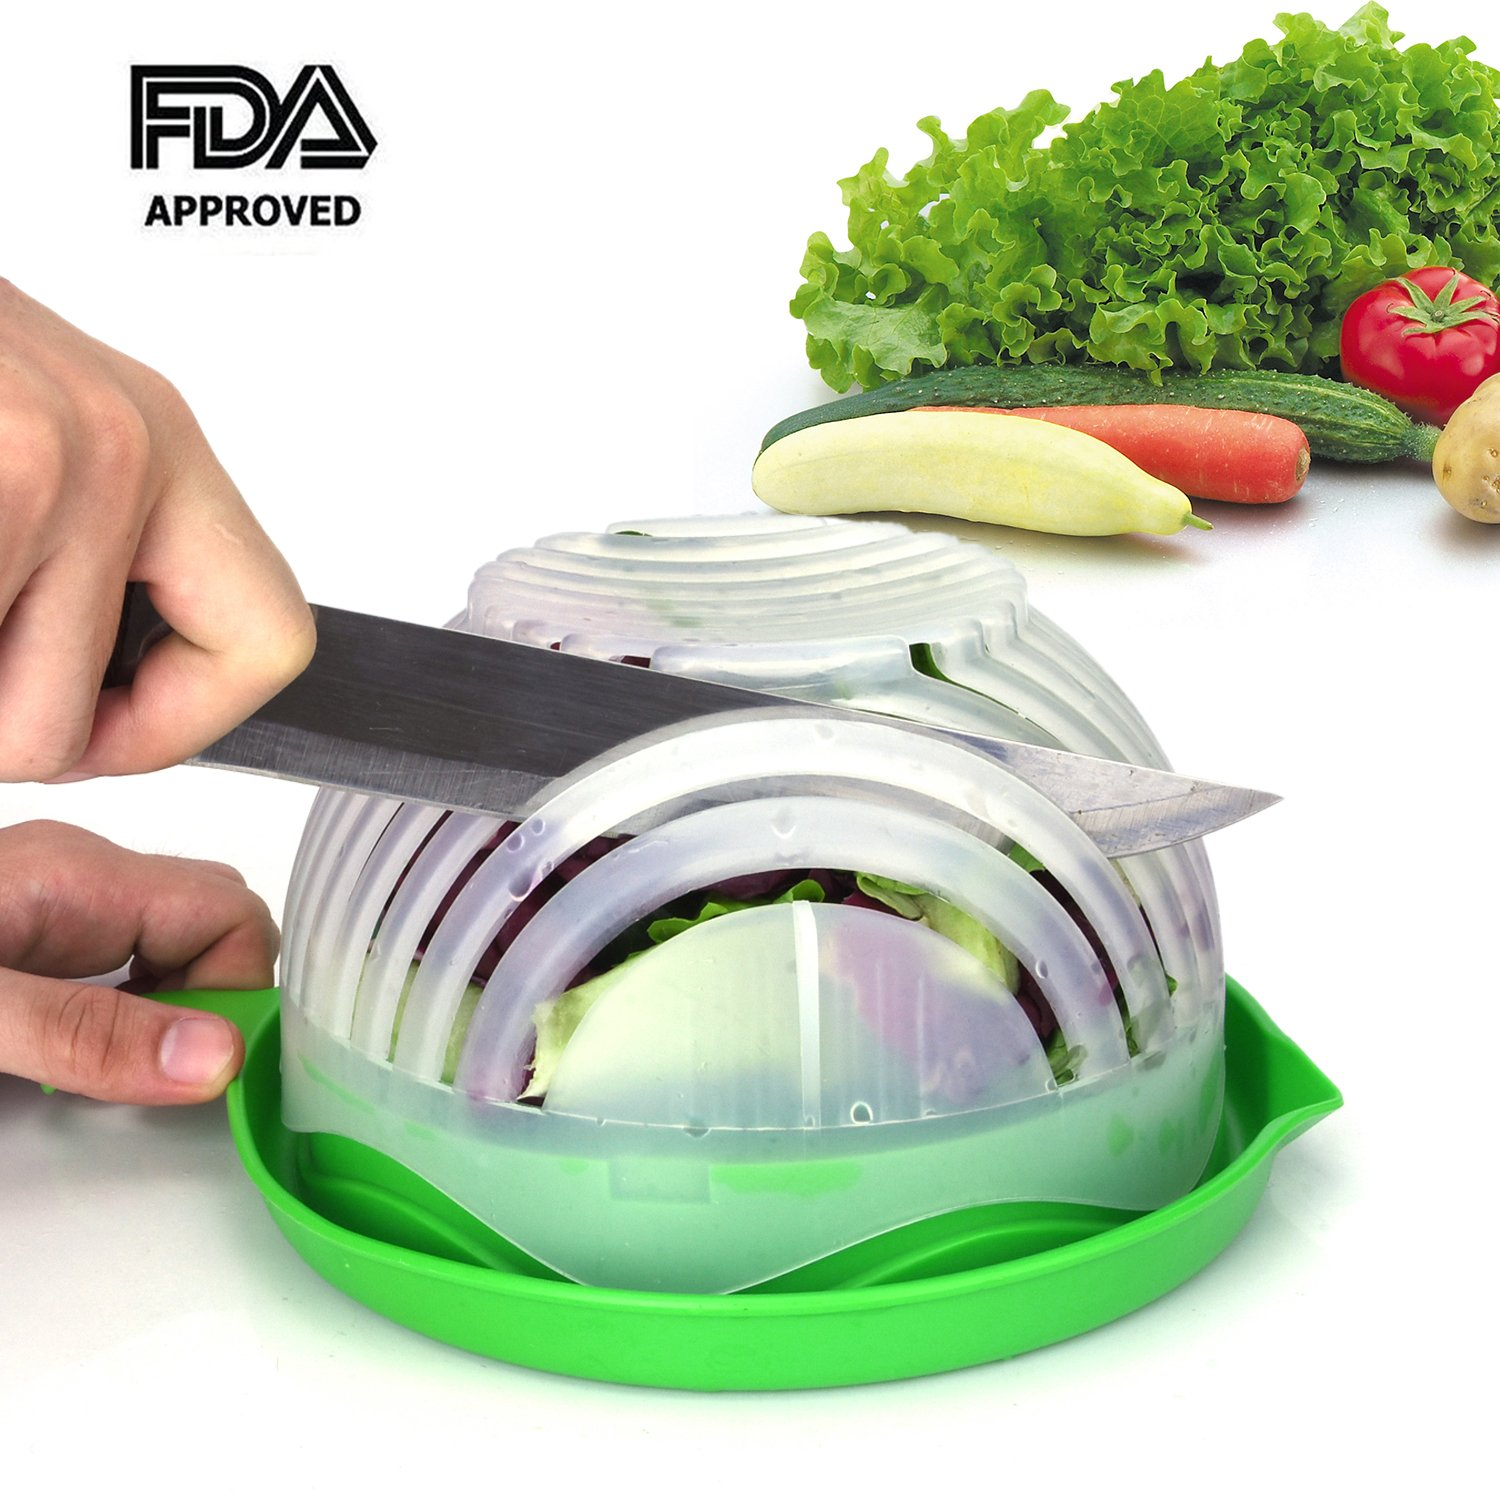 Amazon.com: Salad Cutter Bowl Upgraded Salad Maker by WEBSUN Easy ...